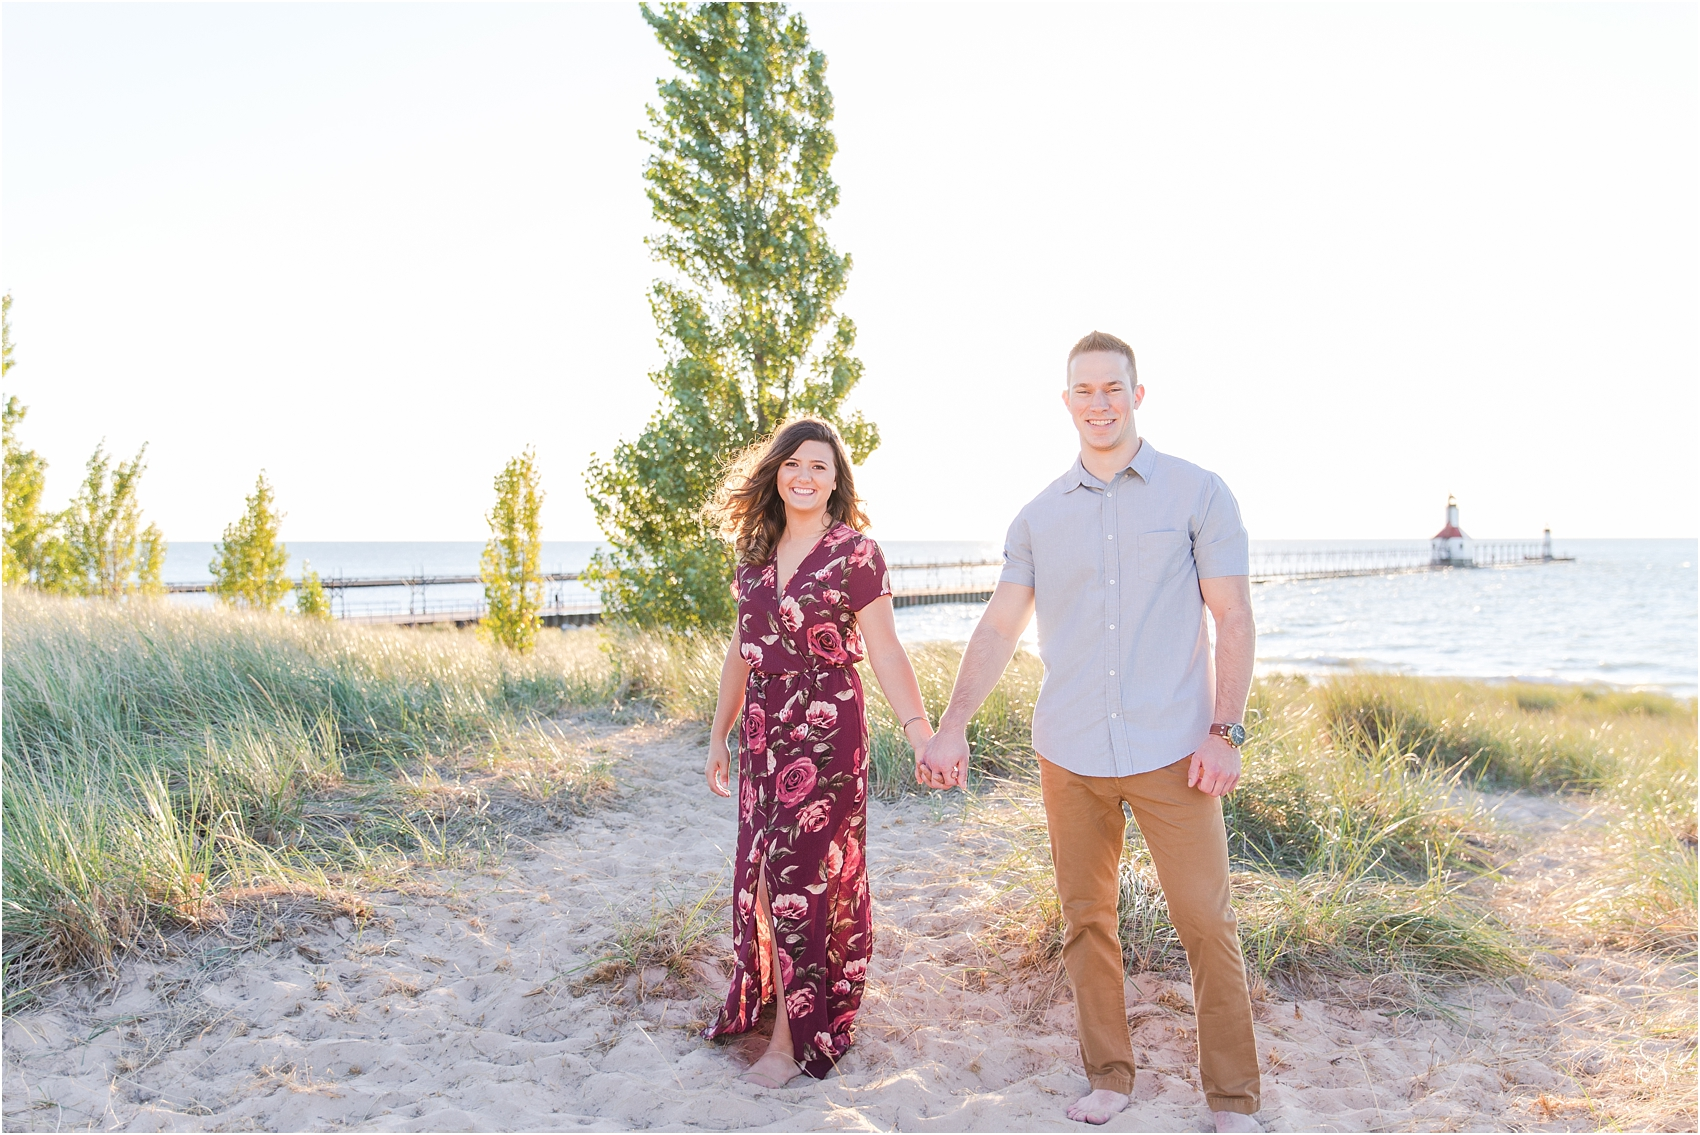 candid-end-of-summer-sunset-engagement-photos-at-silver-beach-in-st-joseph-mi-by-courtney-carolyn-photography_0012.jpg